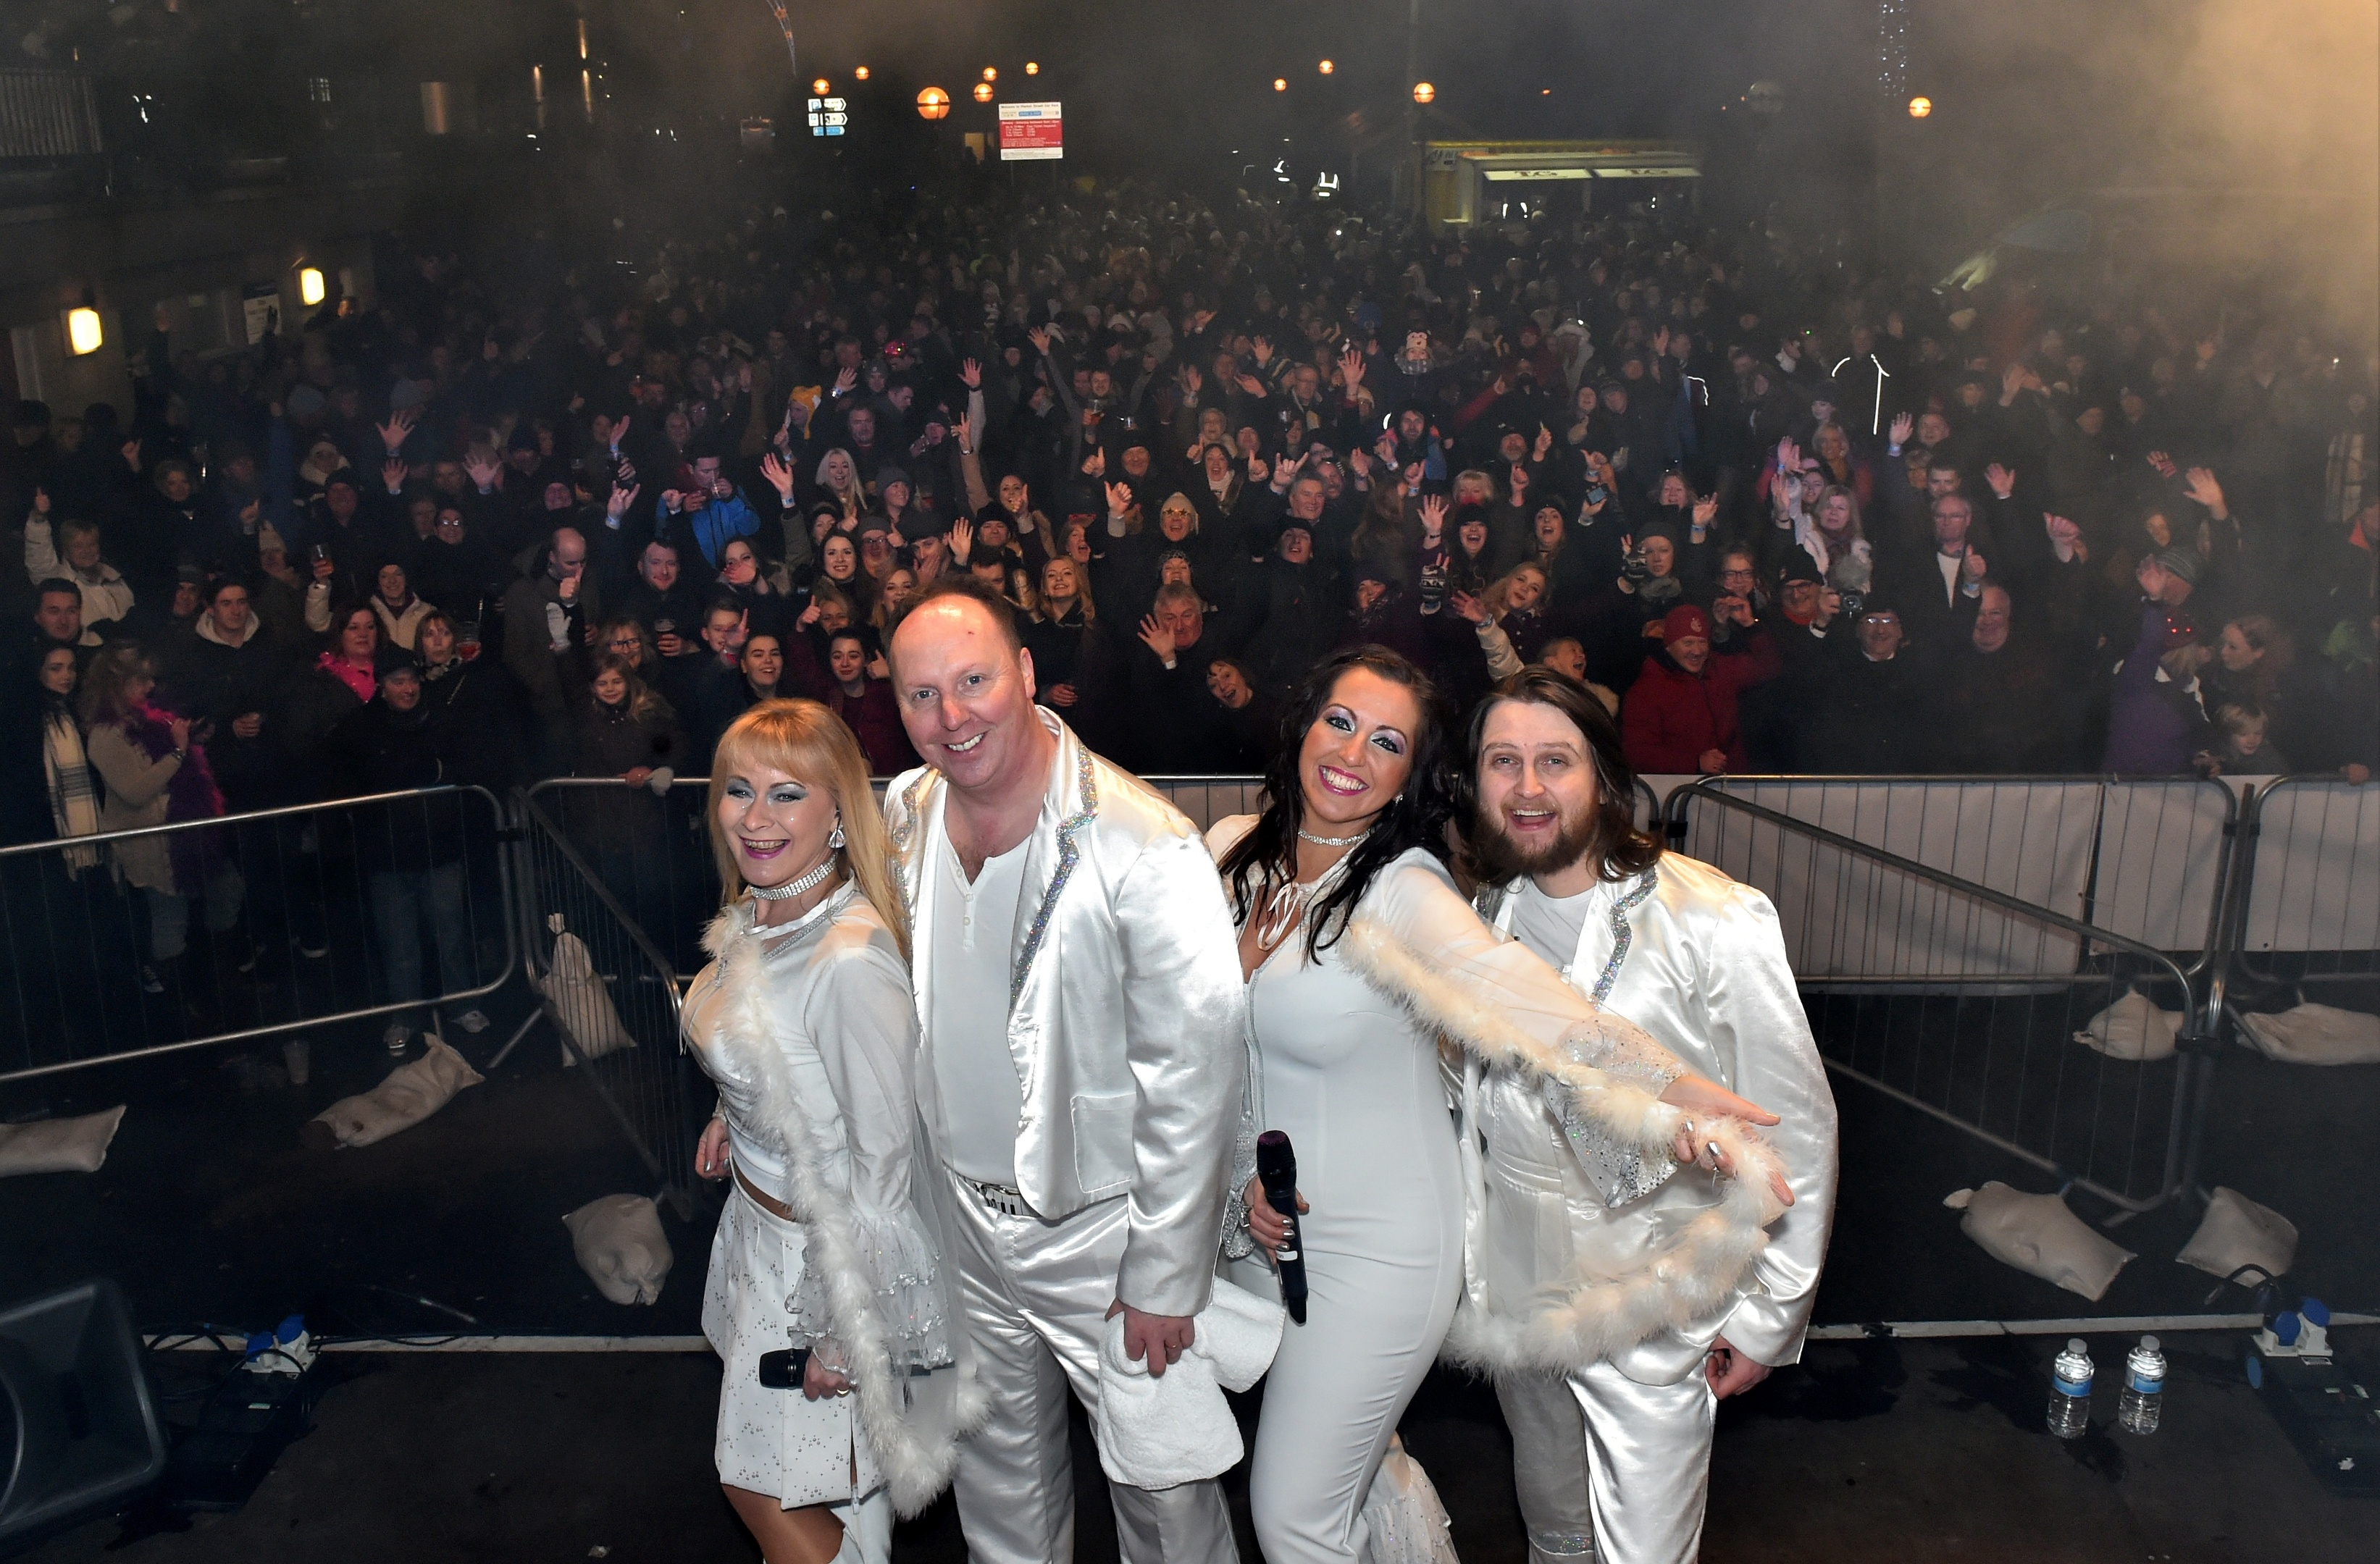 Act Abbamania performed at Ellon's Gig at the Brig. Inset, the fireworks.